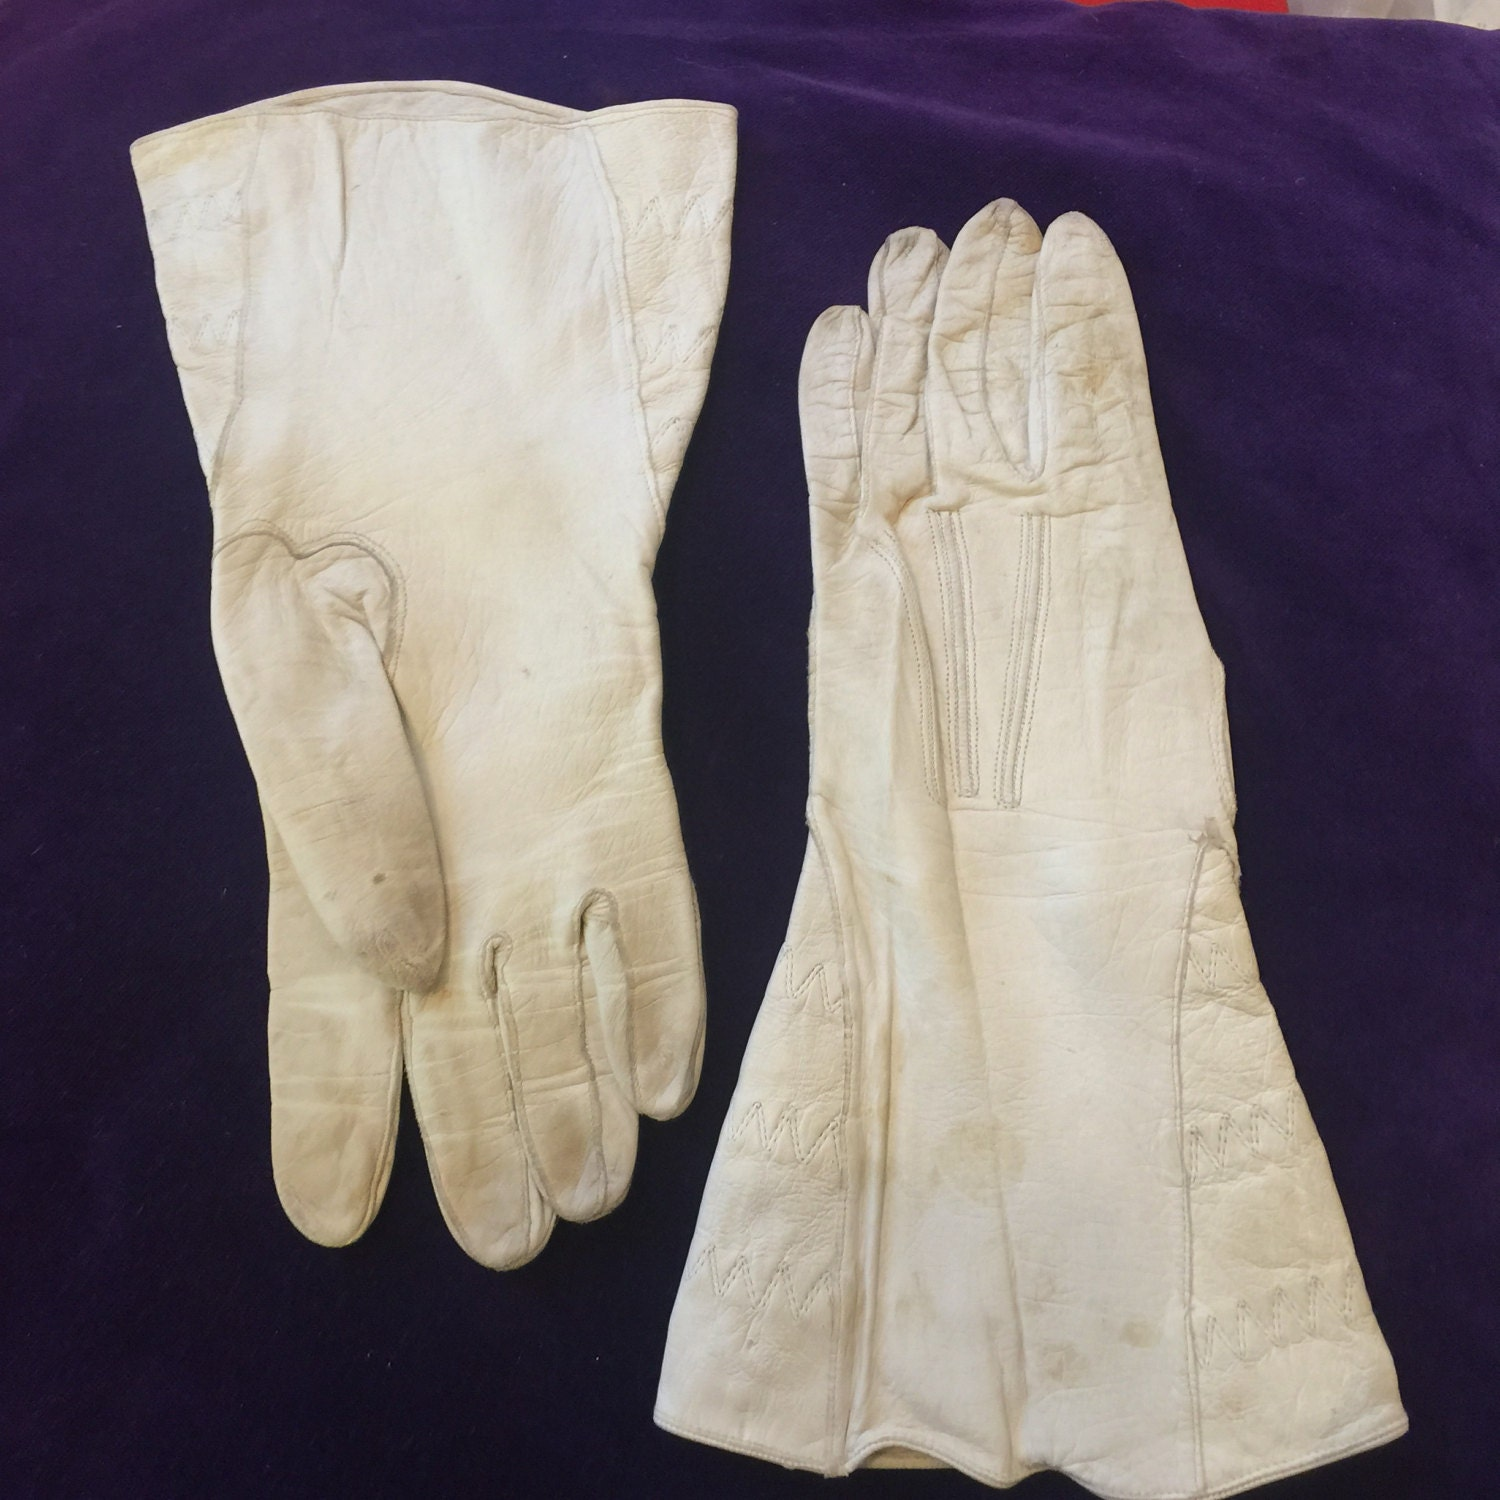 Leather gauntlet driving gloves - Vintage Leather Gauntlets Cream Gloves Motorcycle 6 5 Winter 1930s 1940s Motorcycle Riding Ladies Ww2 Uniform Short Fingers